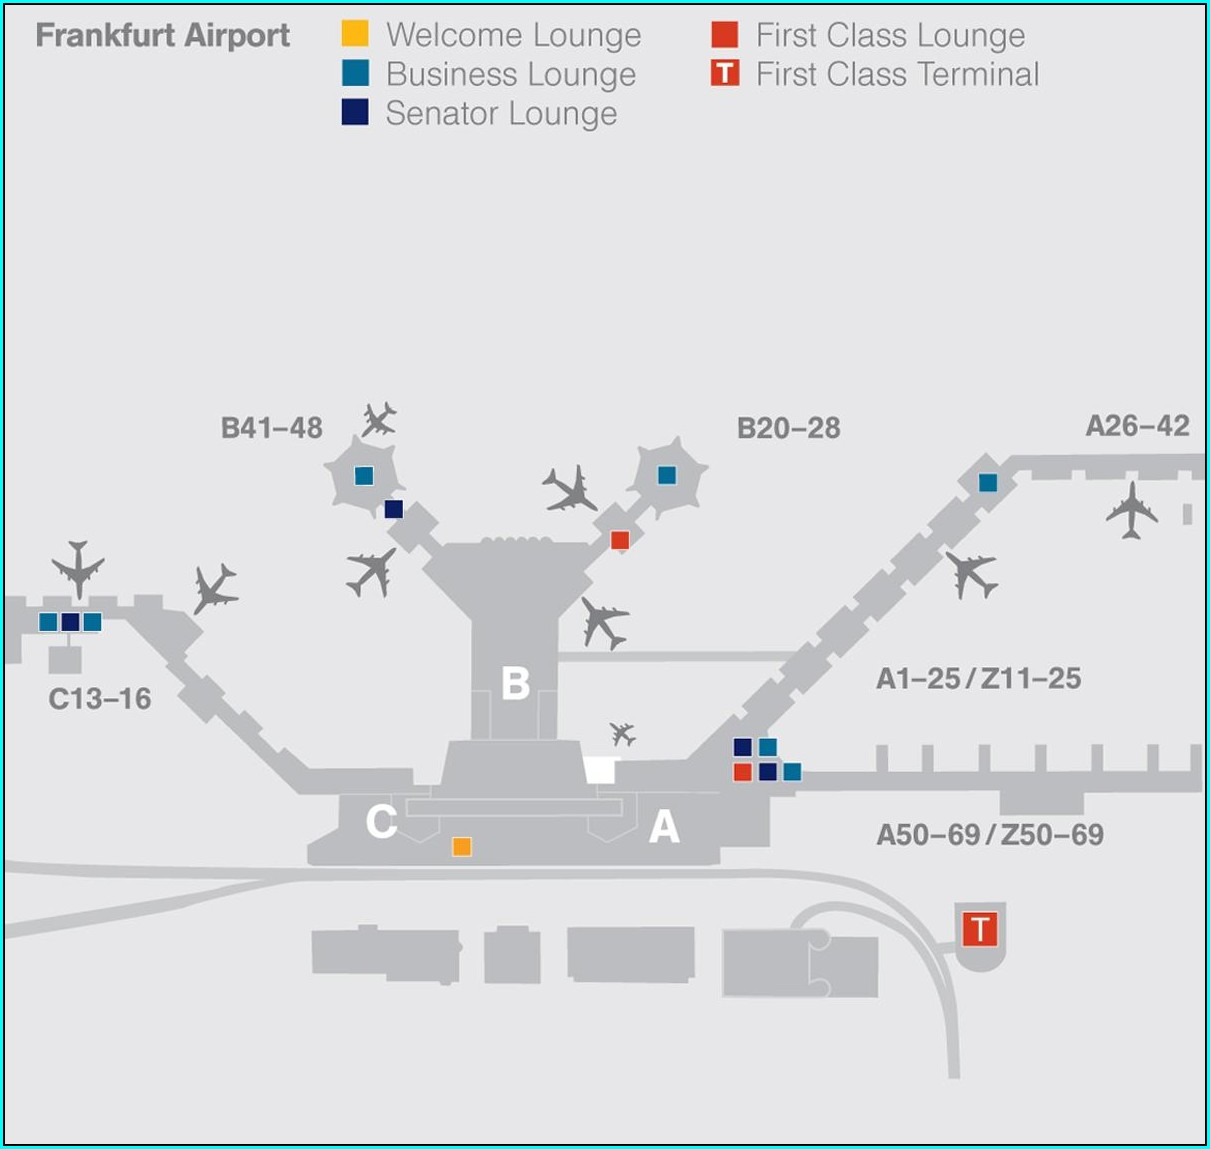 Frankfurt Airport Map Lounges